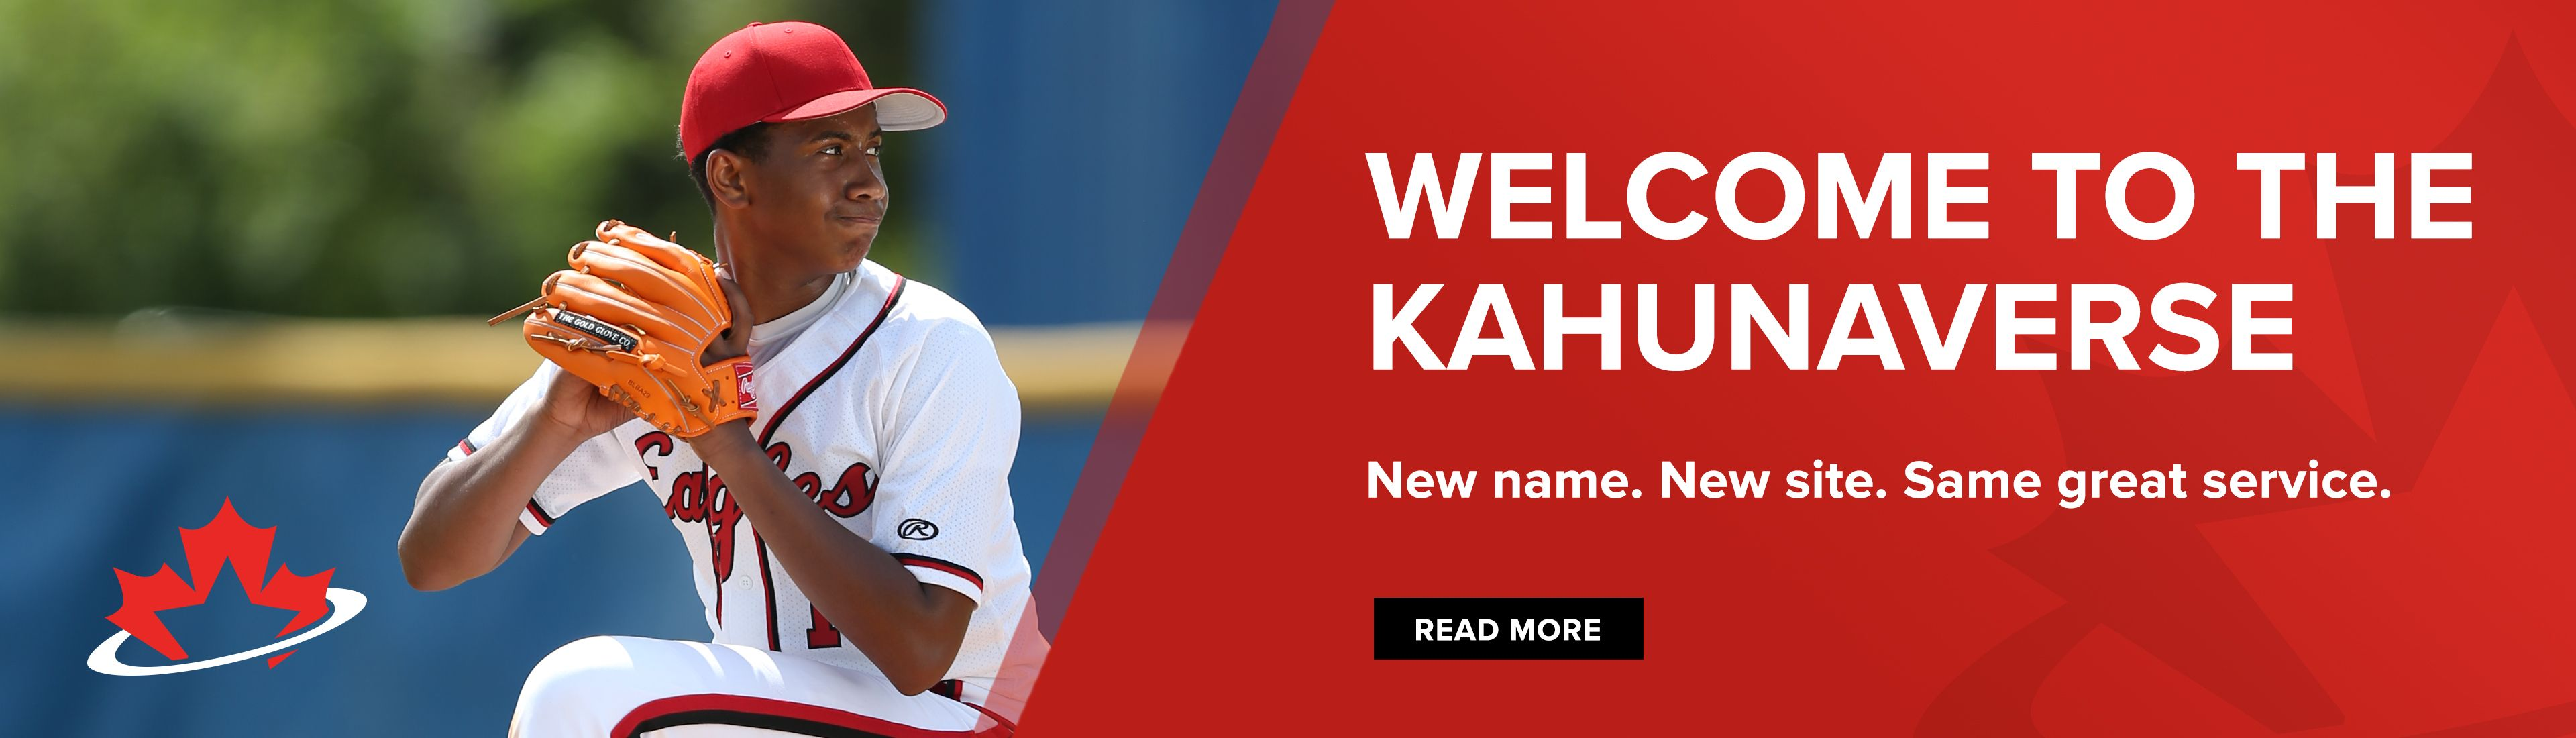 Welcome to Kahunaverse Sports